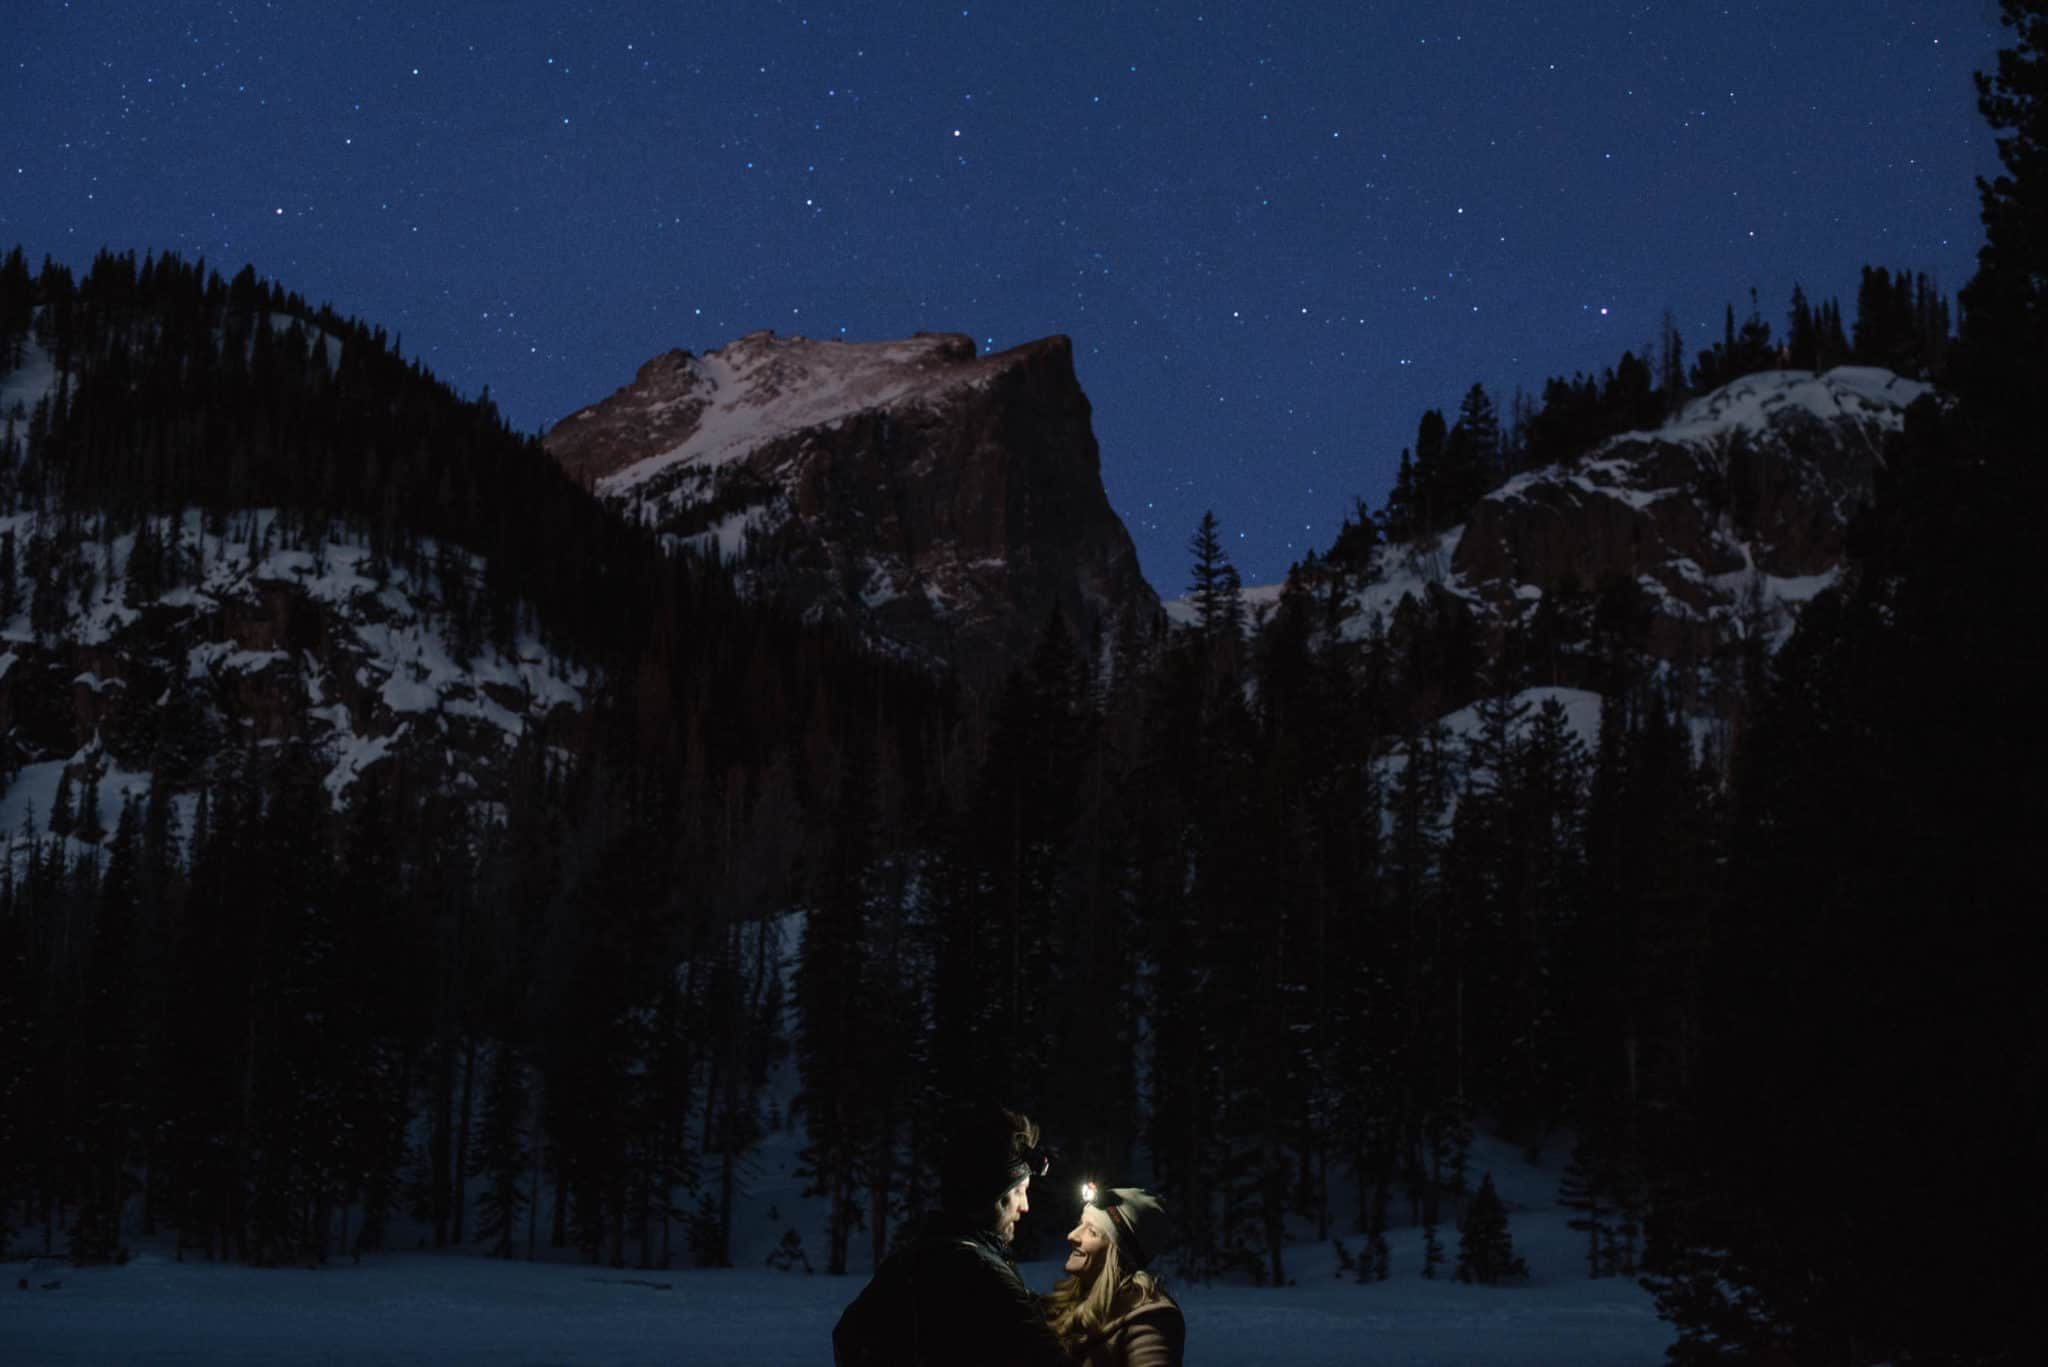 couple star gazing on their elopement day to make it special